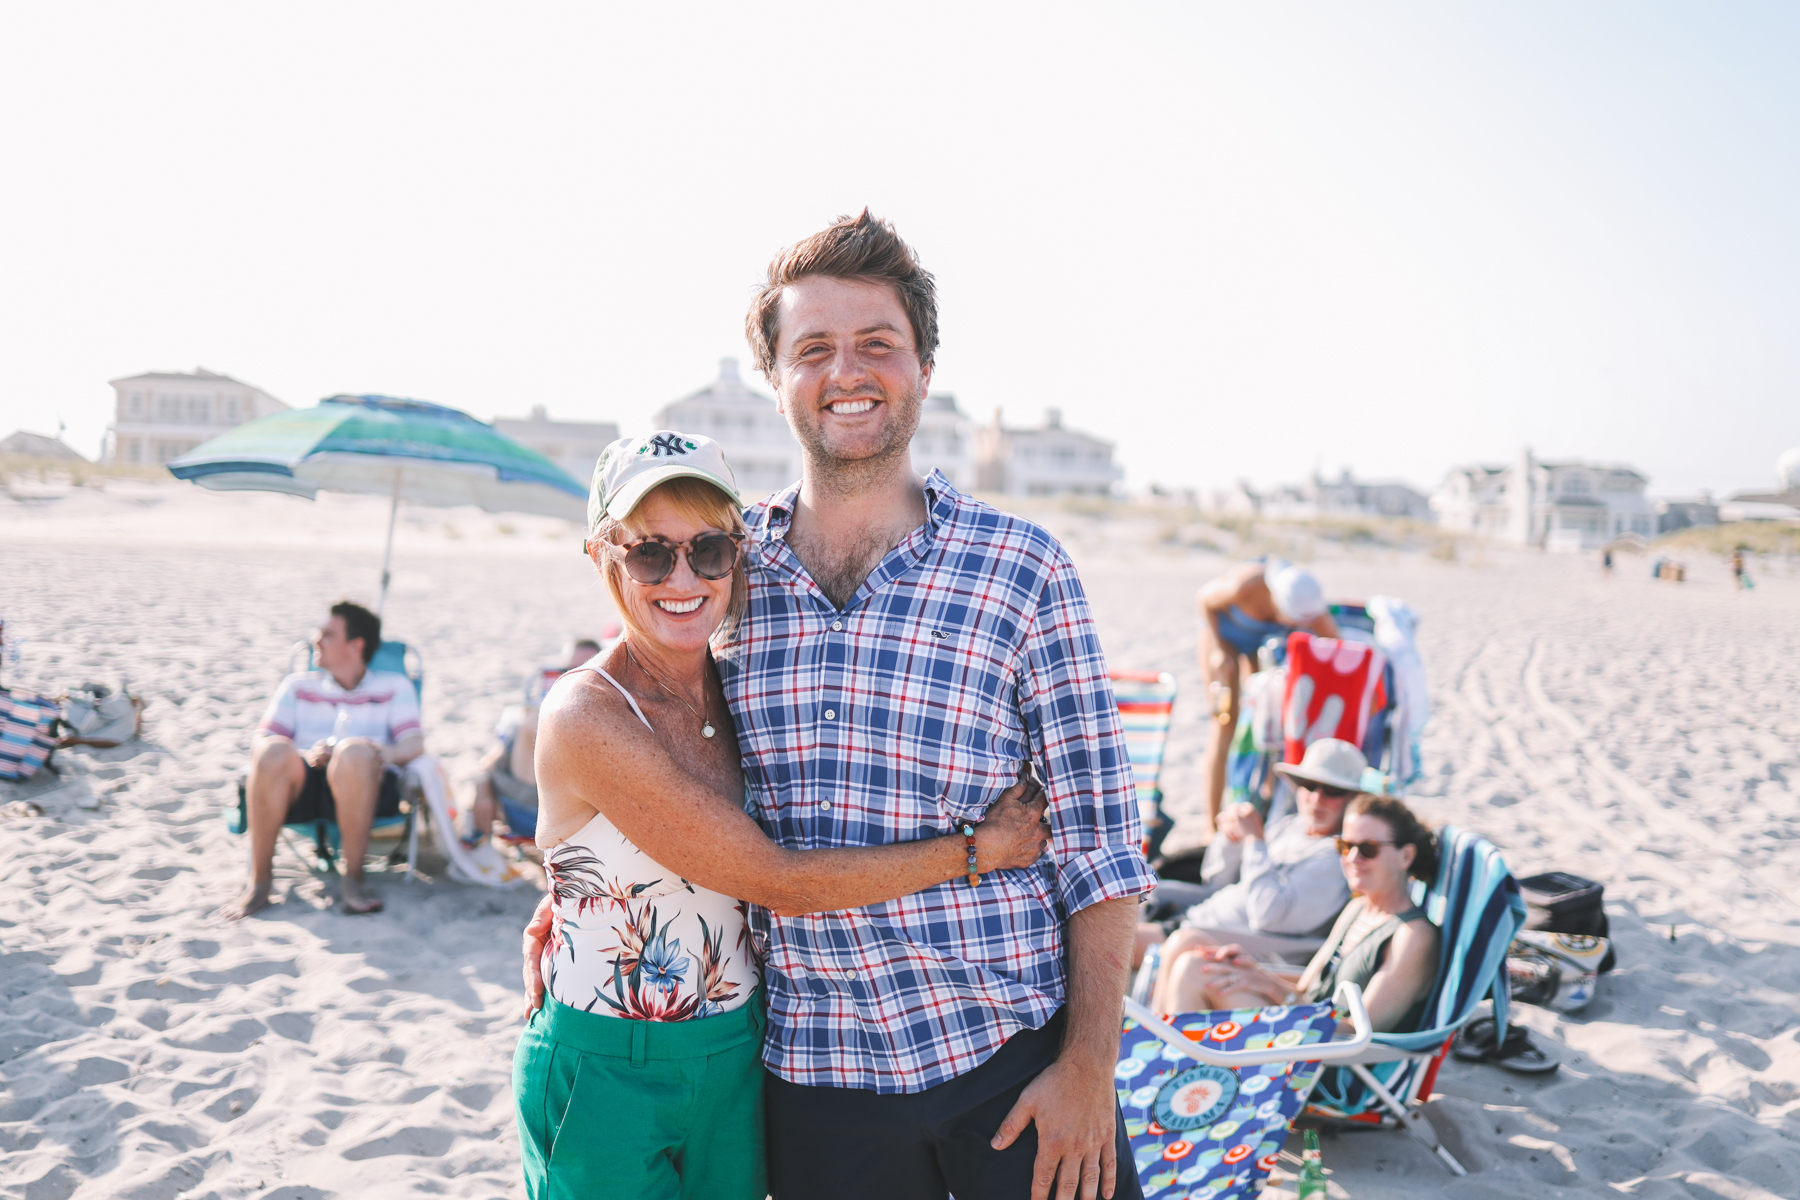 A female in a white shirt and green shorts is smiling next to a man in a plaid shirt